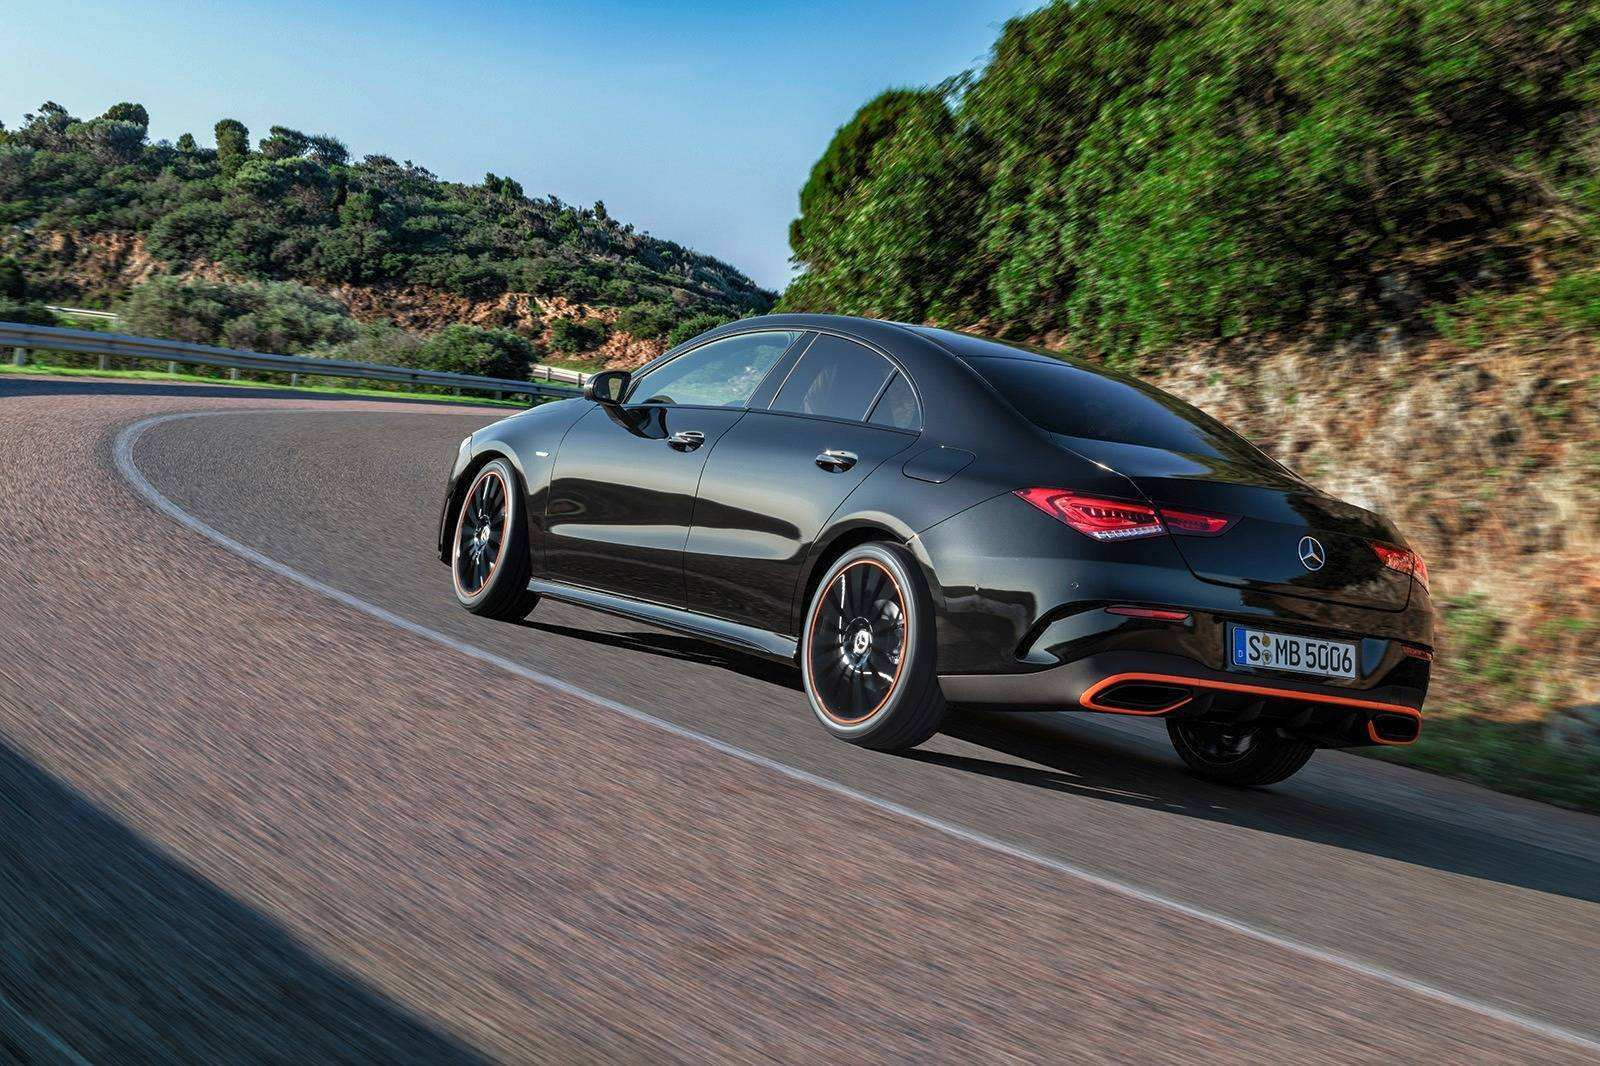 32 Concept of 2020 Mercedes A Class Hatchback Rumors for 2020 Mercedes A Class Hatchback